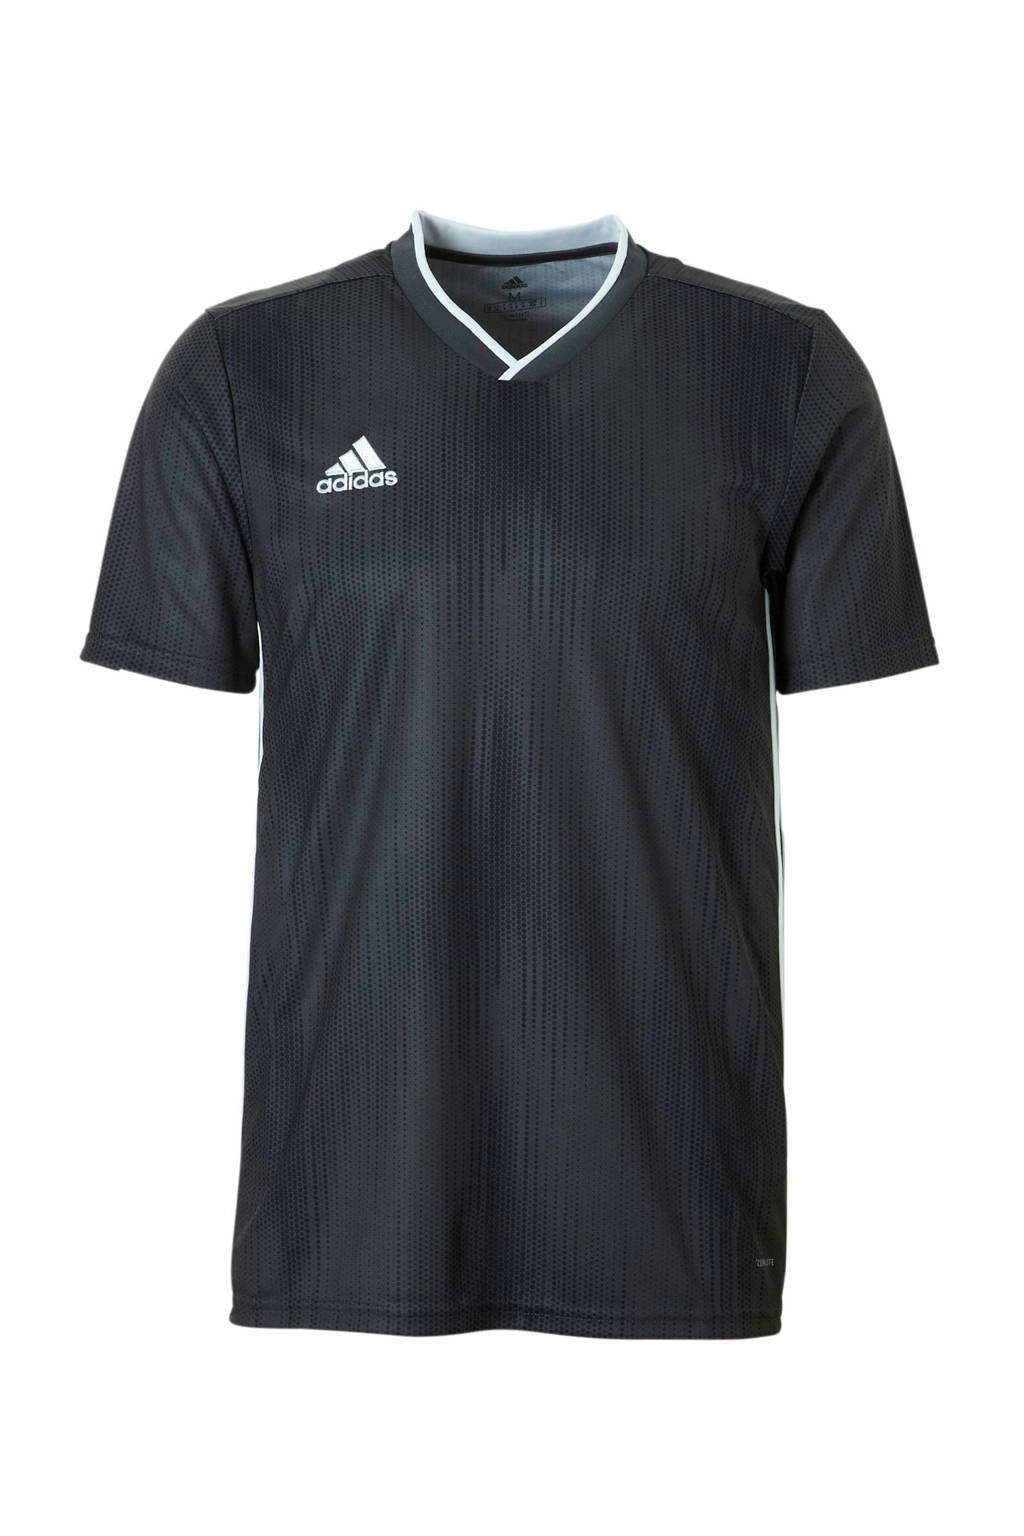 adidas performance Senior  sport T-shirt Tiro grijs, Heren